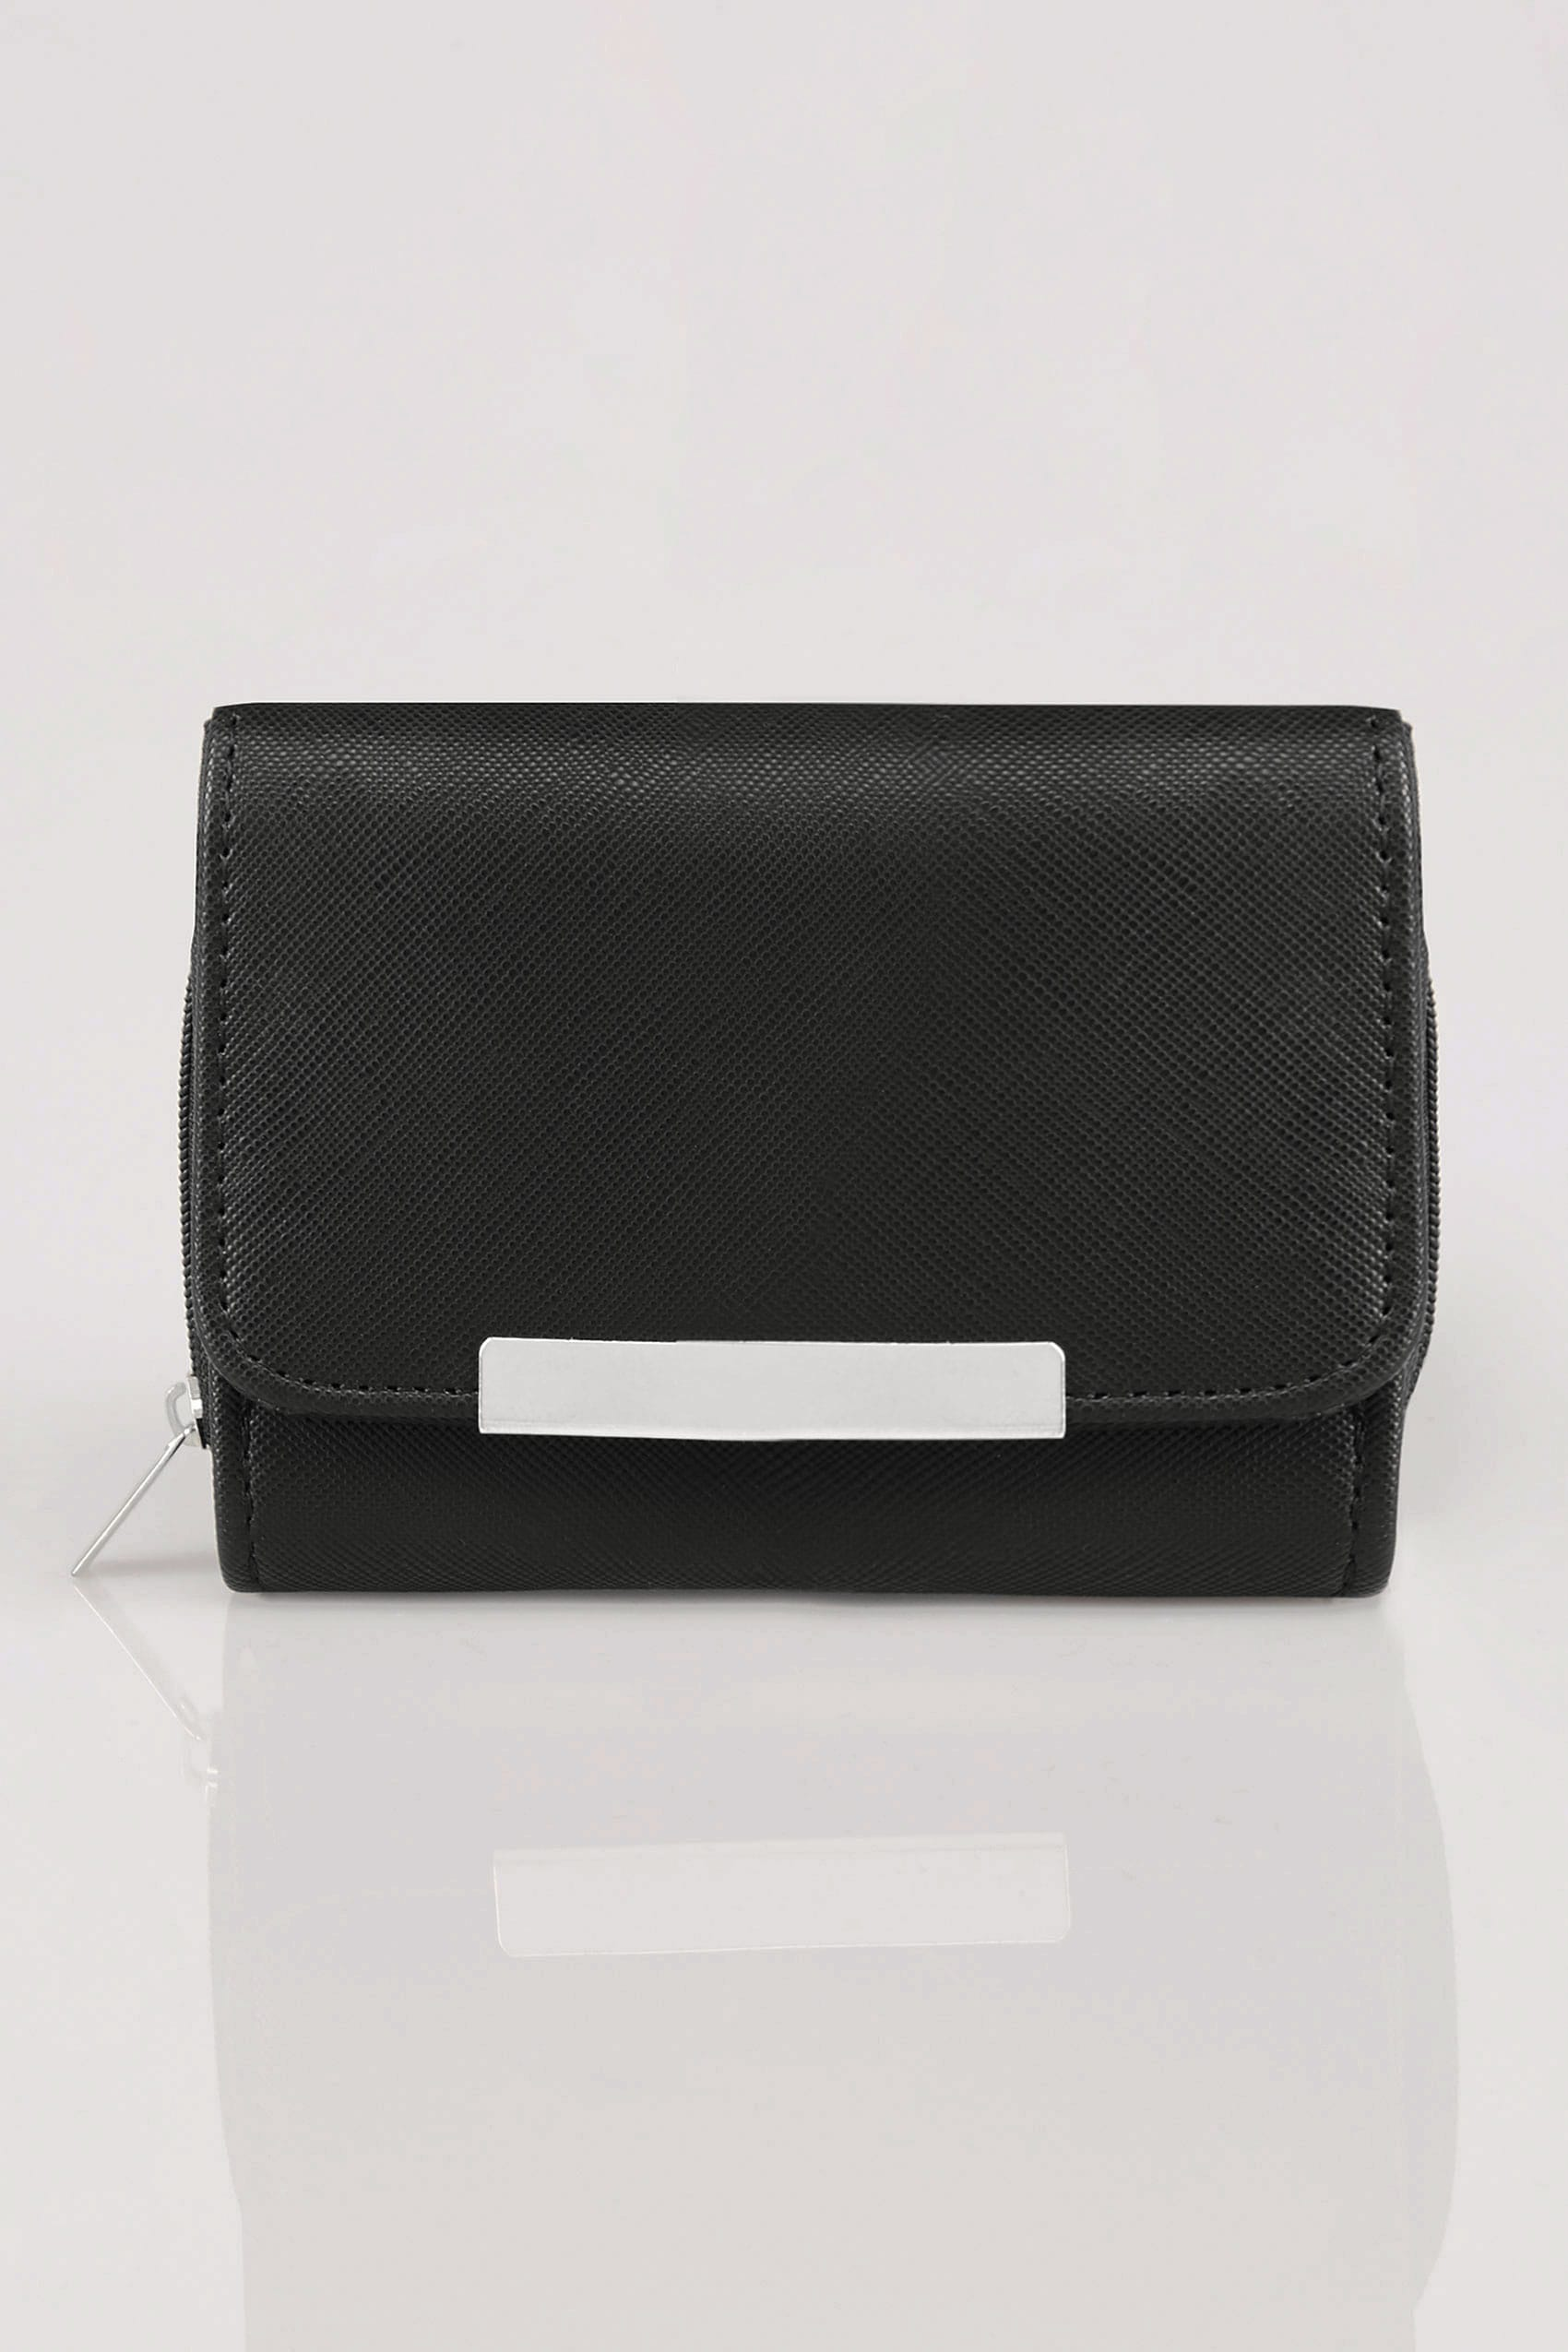 Black zip around purse with metal bar trim for Buy here pay later